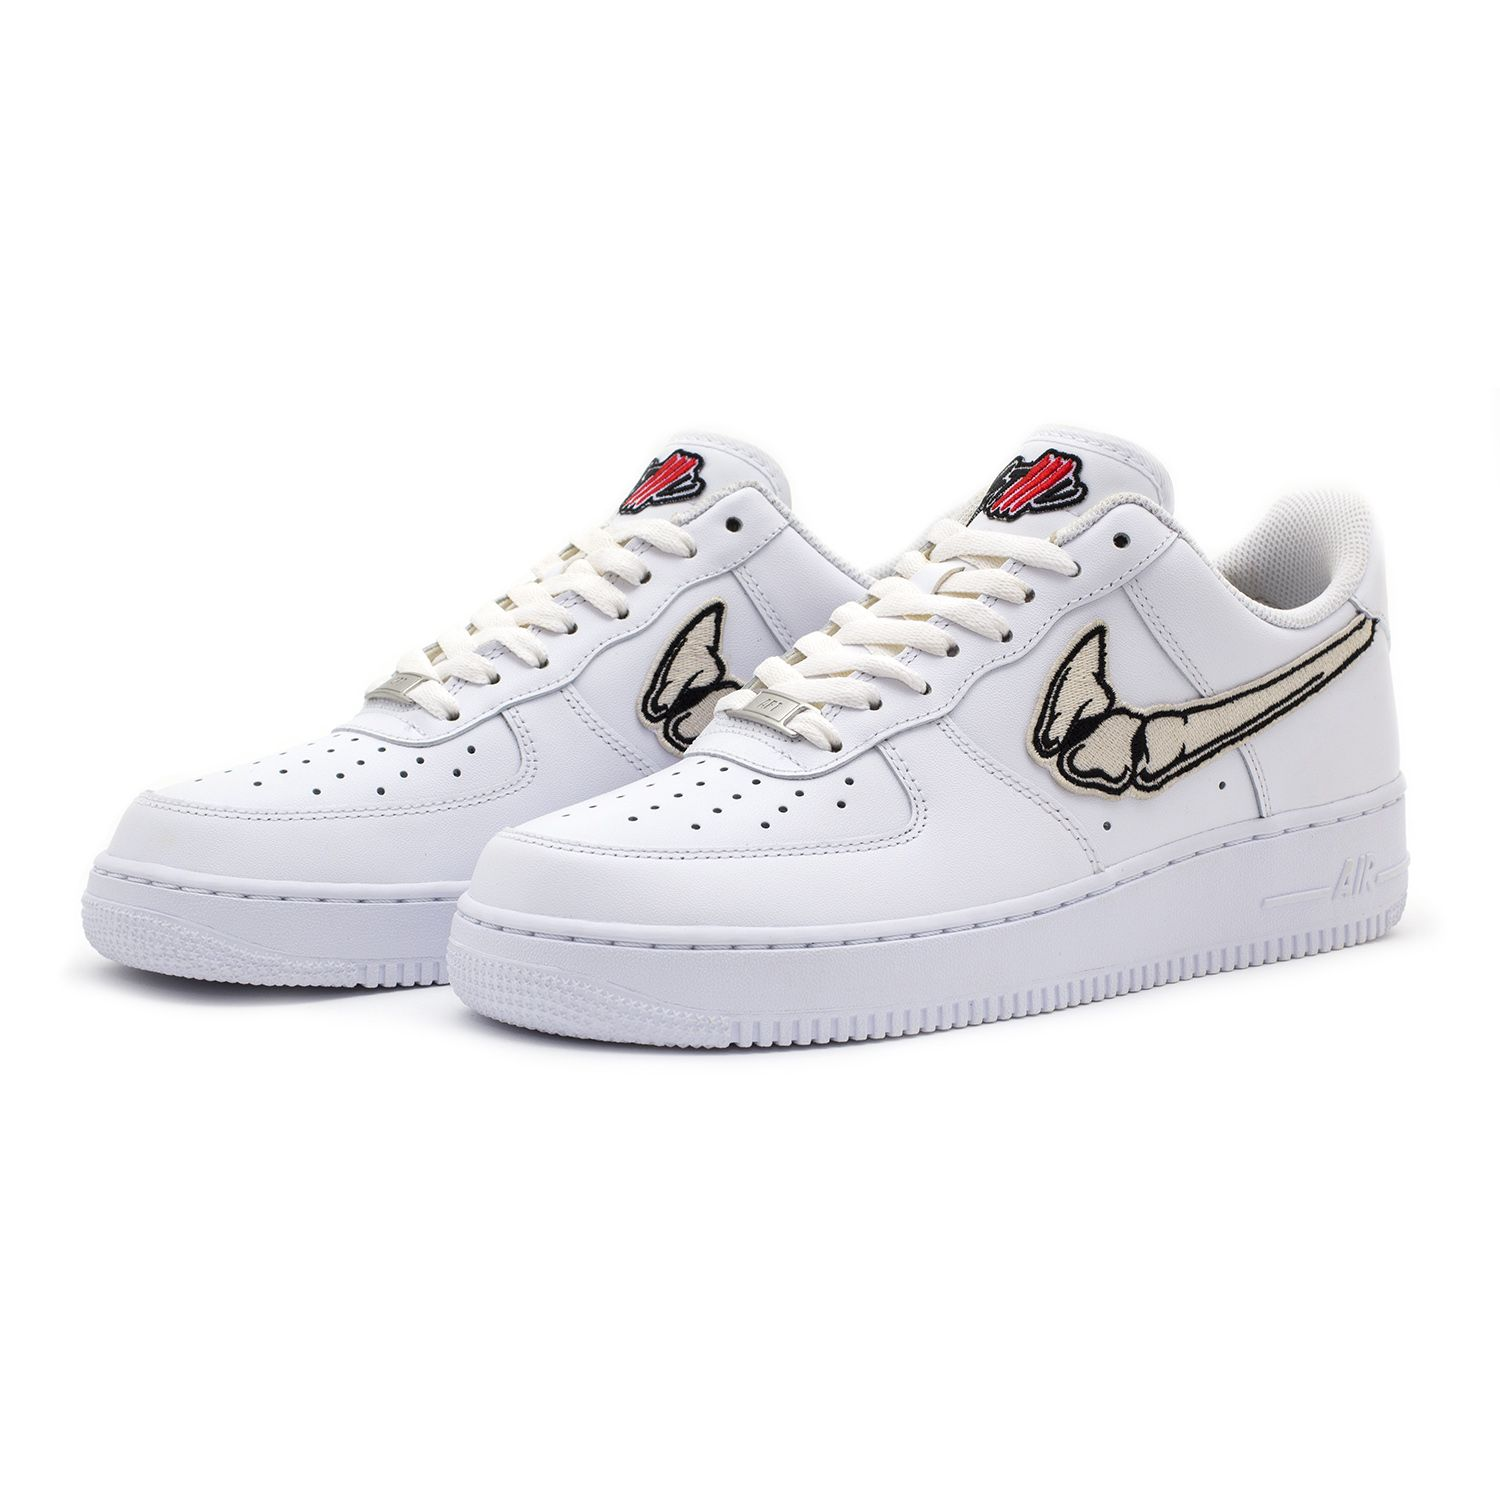 brand new 51cf6 dcb21 FATAL AIR FORCE 1 Bone   White Low Custom Sneakers – STILLALIVE